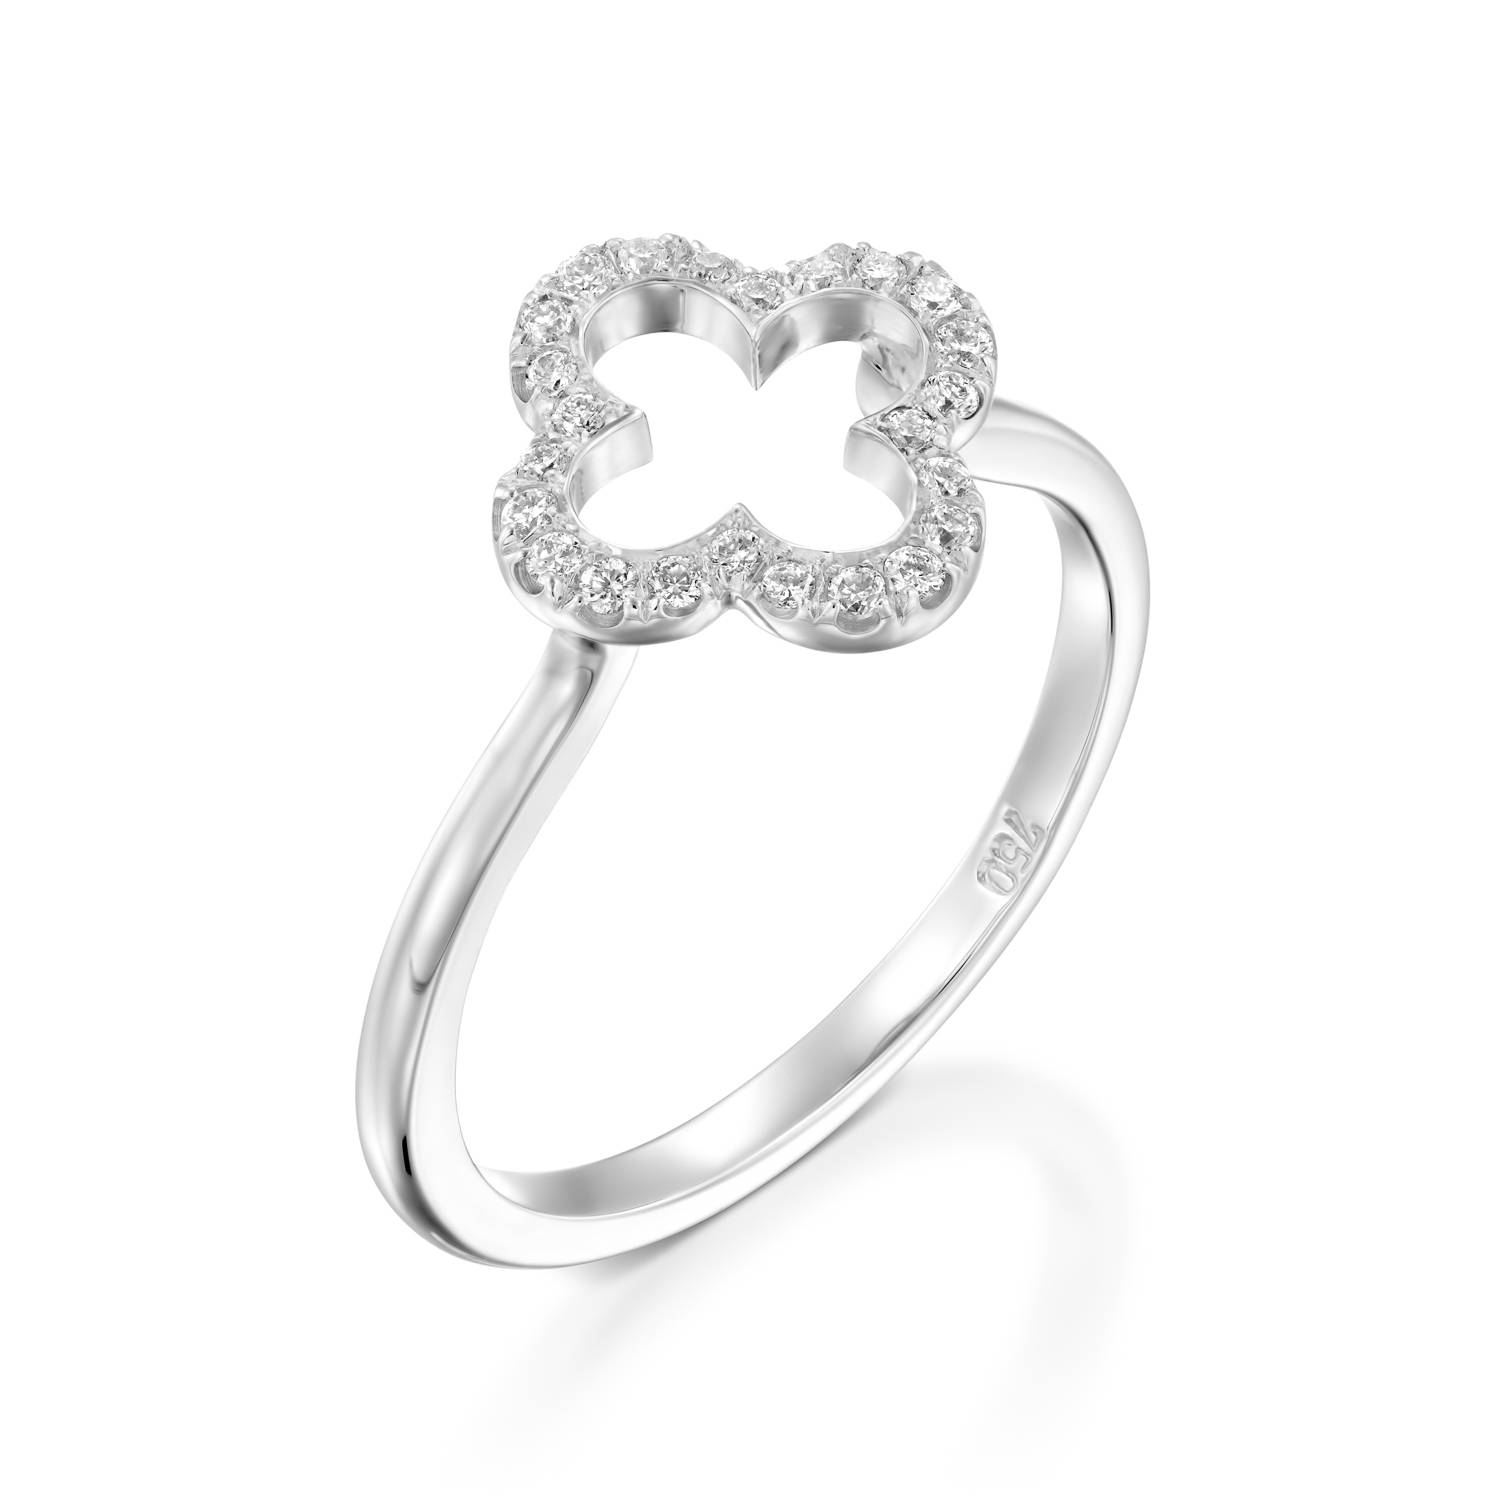 18K White Gold Four Leaf Clover Diamond, Engagement Ring For Women, Wedding  Band, Bridal Set, Bring Luck Jewelry, Lucky Ring, Chance Ring For 2018 Lucky Four Leaf Clover Open Rings (View 2 of 25)